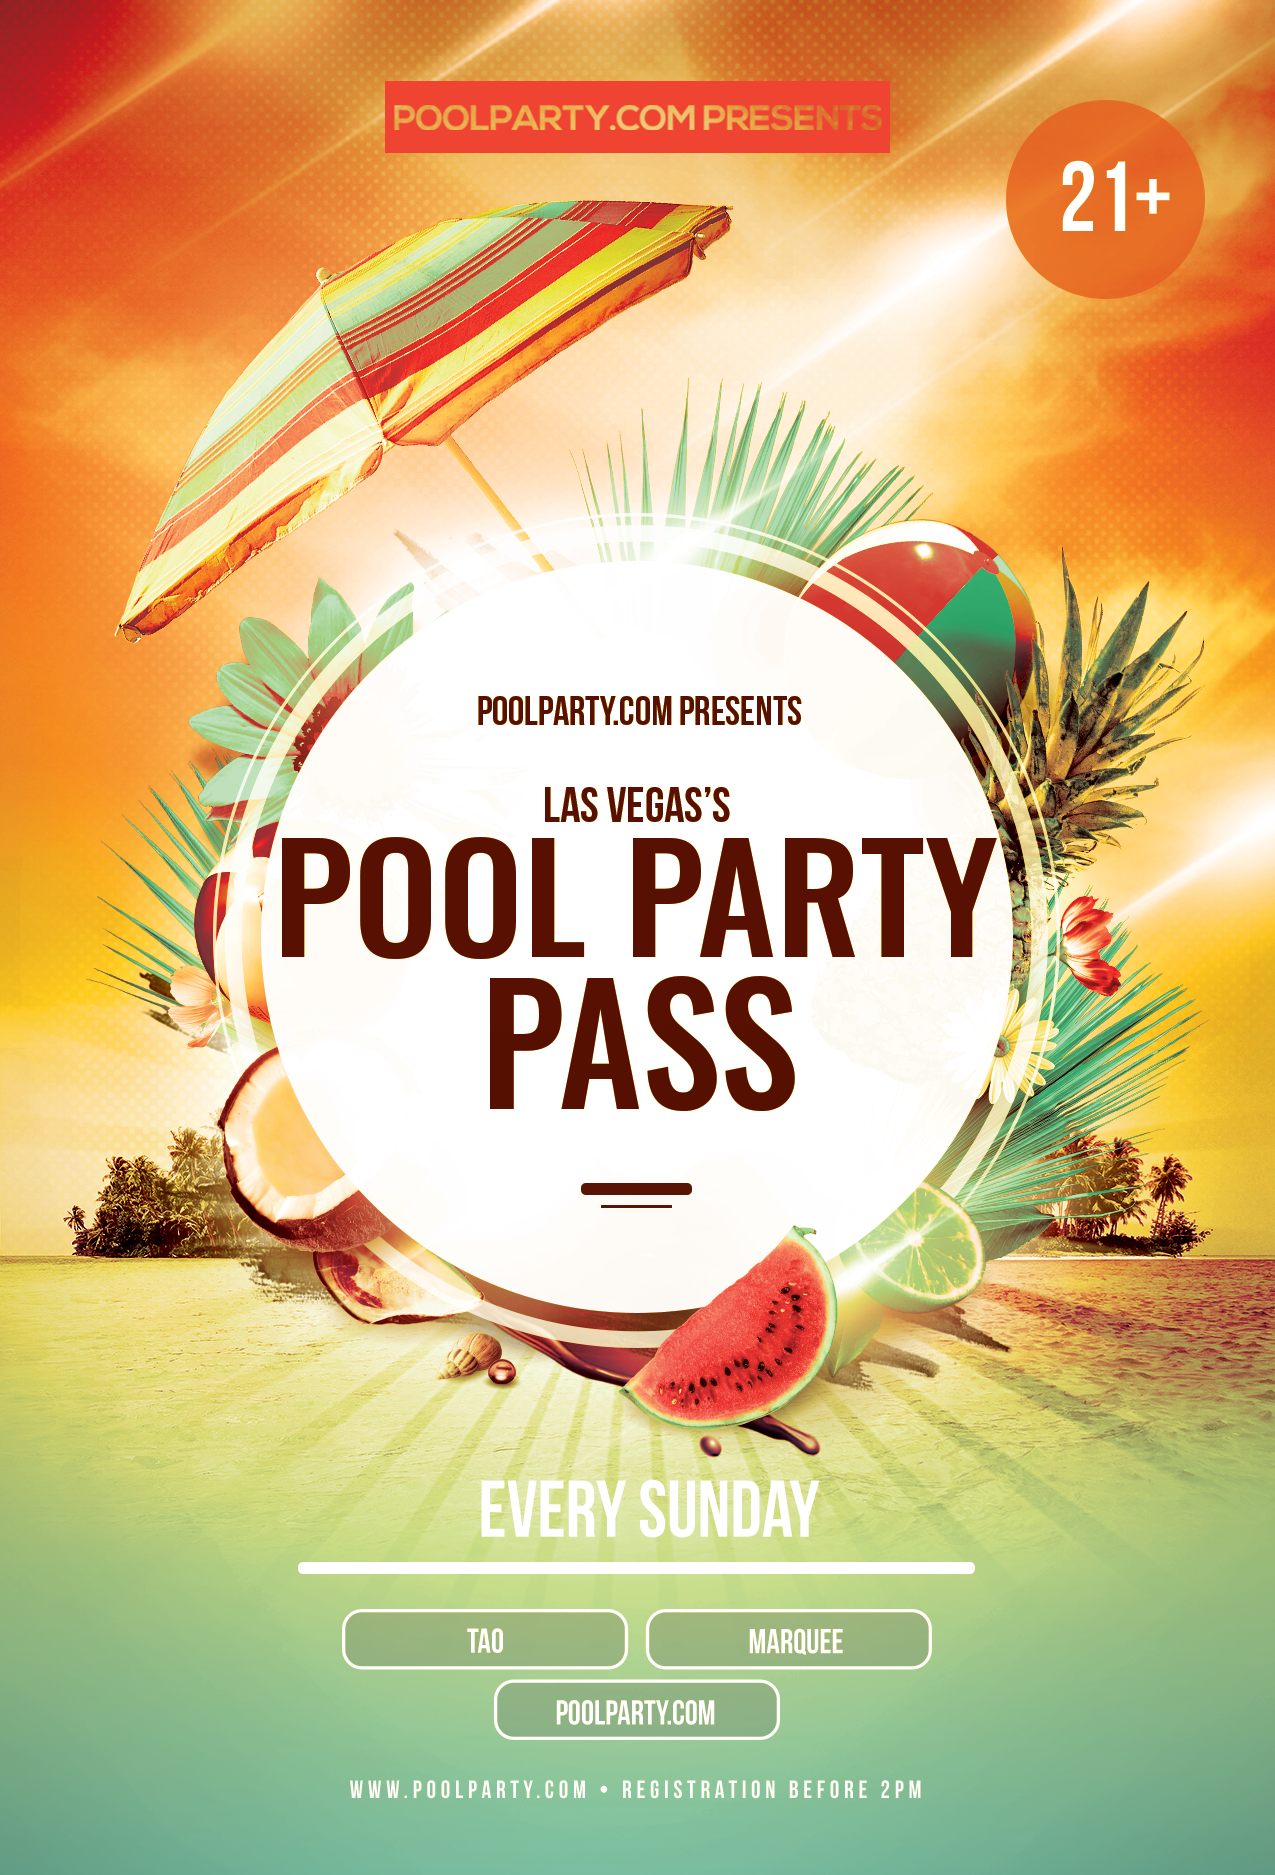 Sunday's Pool Party Pass (May 10th 2020)